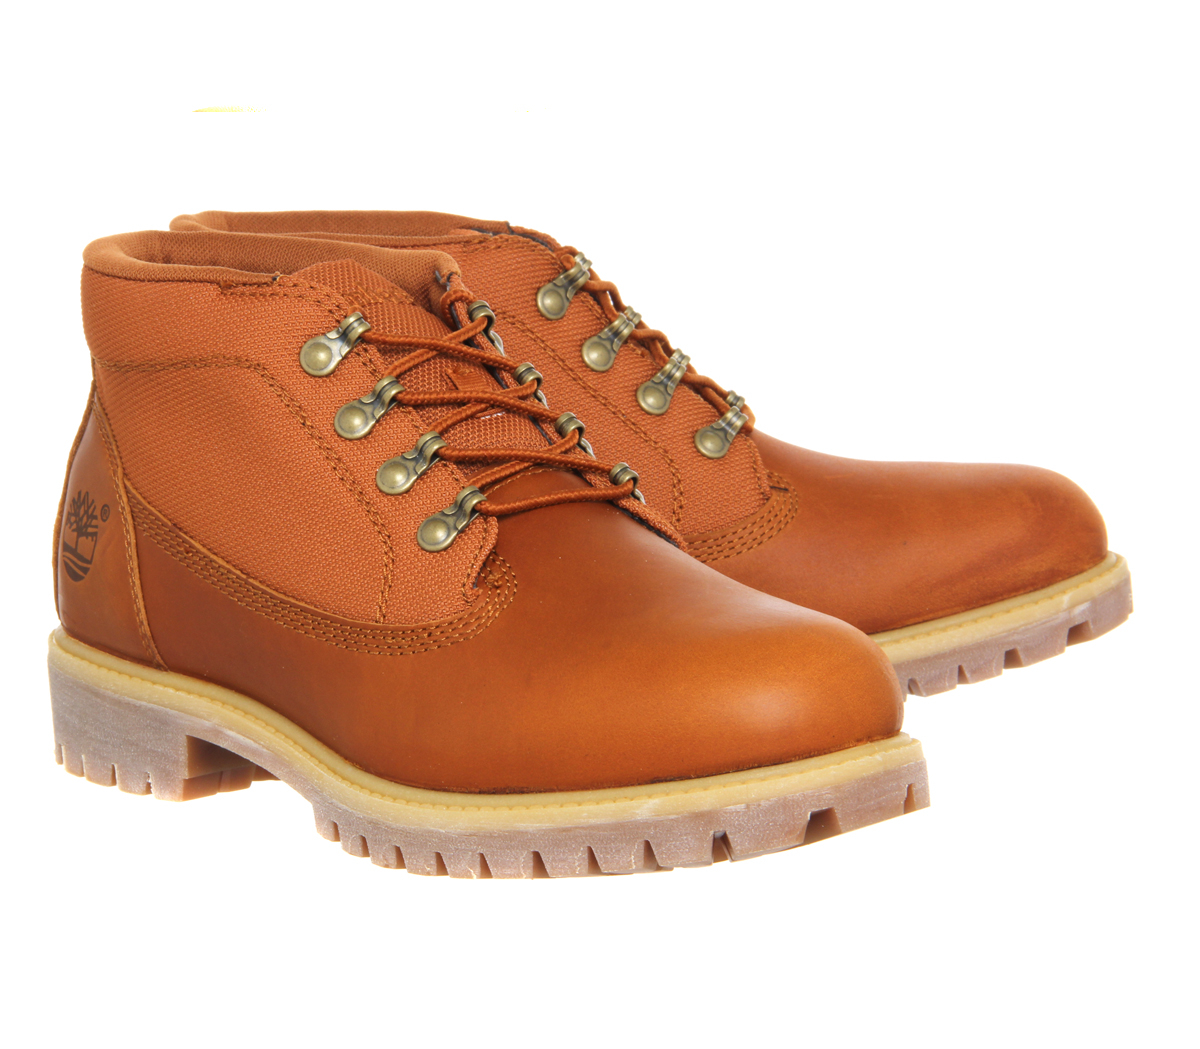 Timberland Campsite Chukka Boots Exclusive in Brown for ...